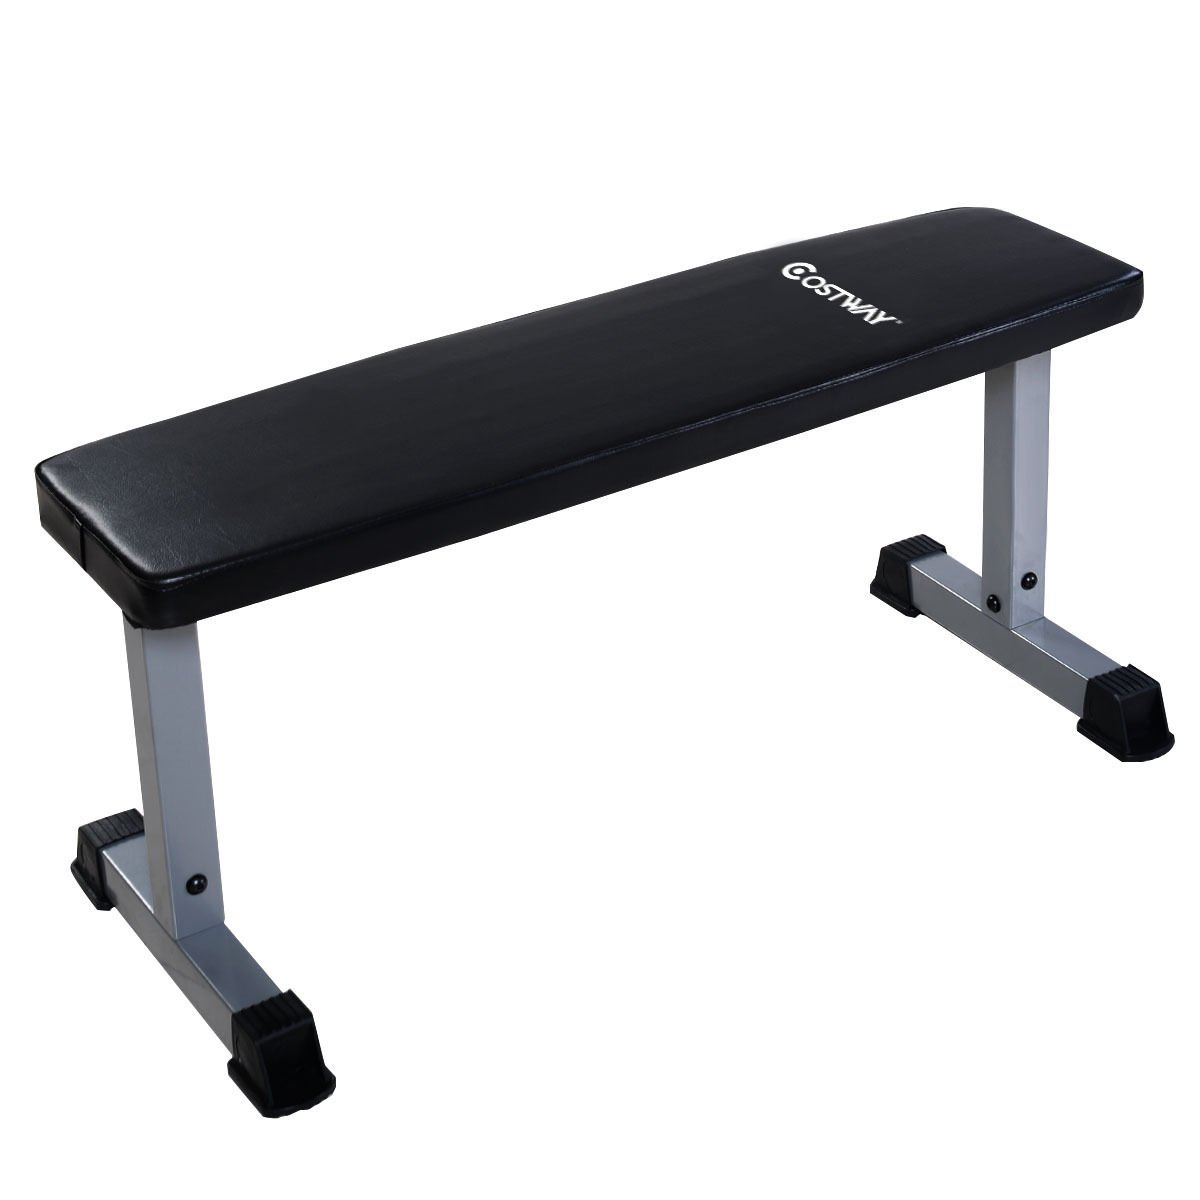 Goplus Weight Bench Sit Up Crunch Board Abdominal Fitness AB Exercise Flat Equipment (42'' x 19'' x 19'') by Goplus